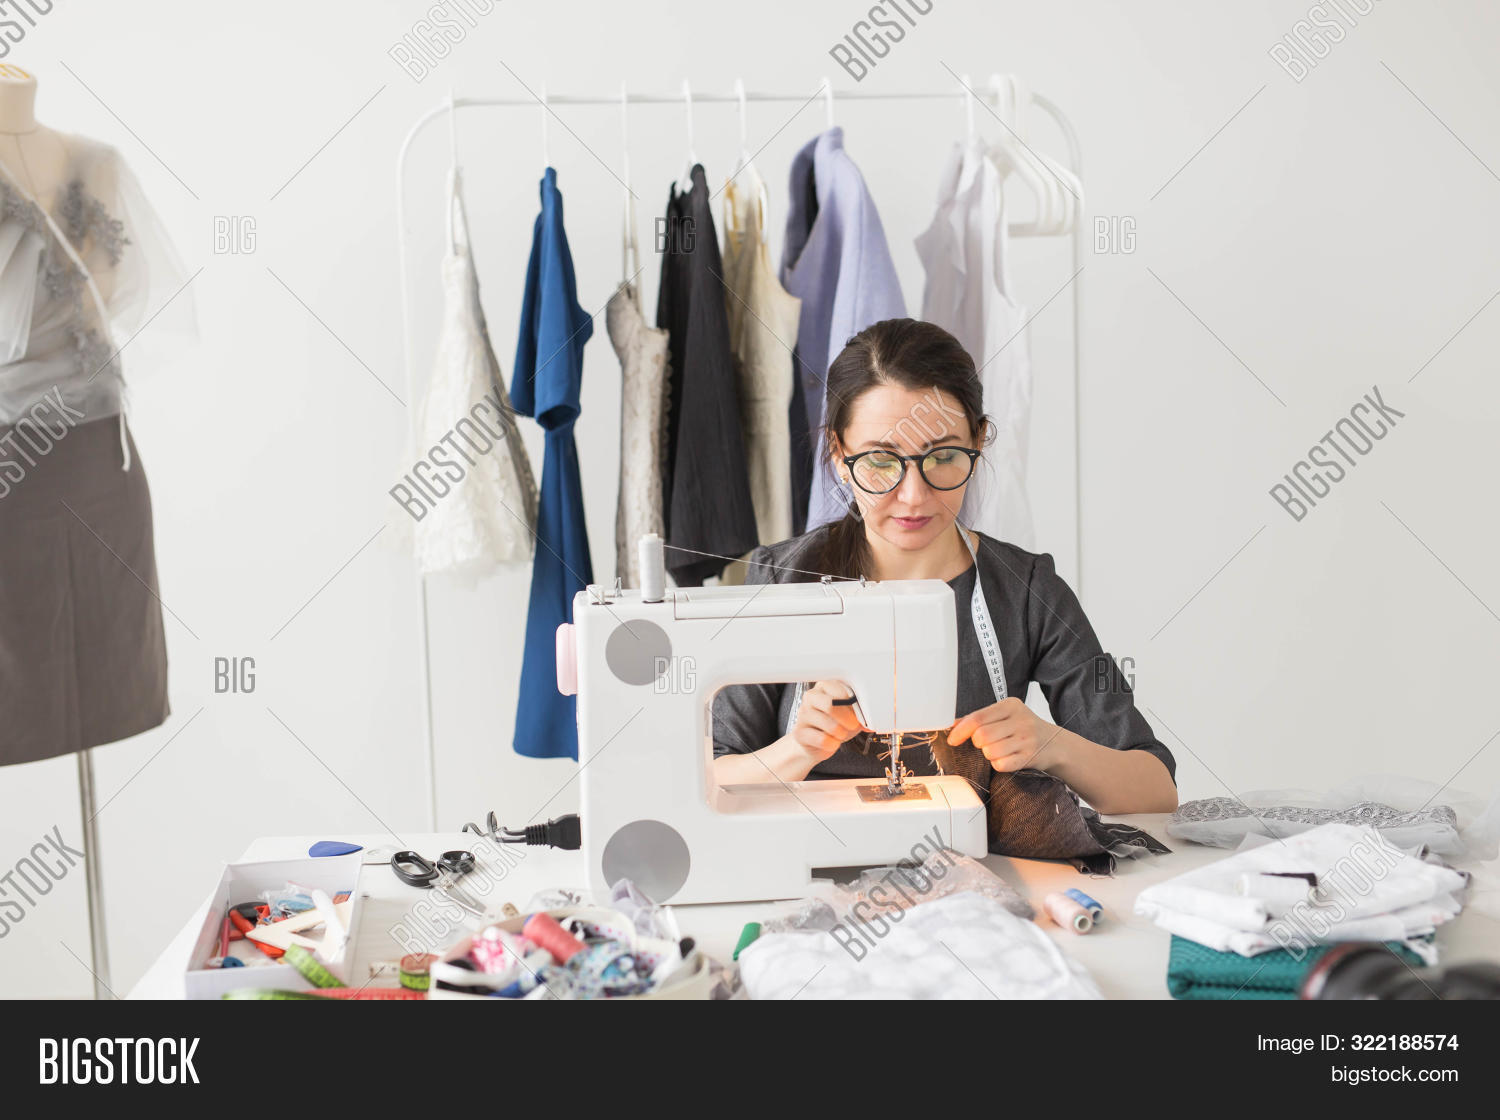 People Tailor Image Photo Free Trial Bigstock